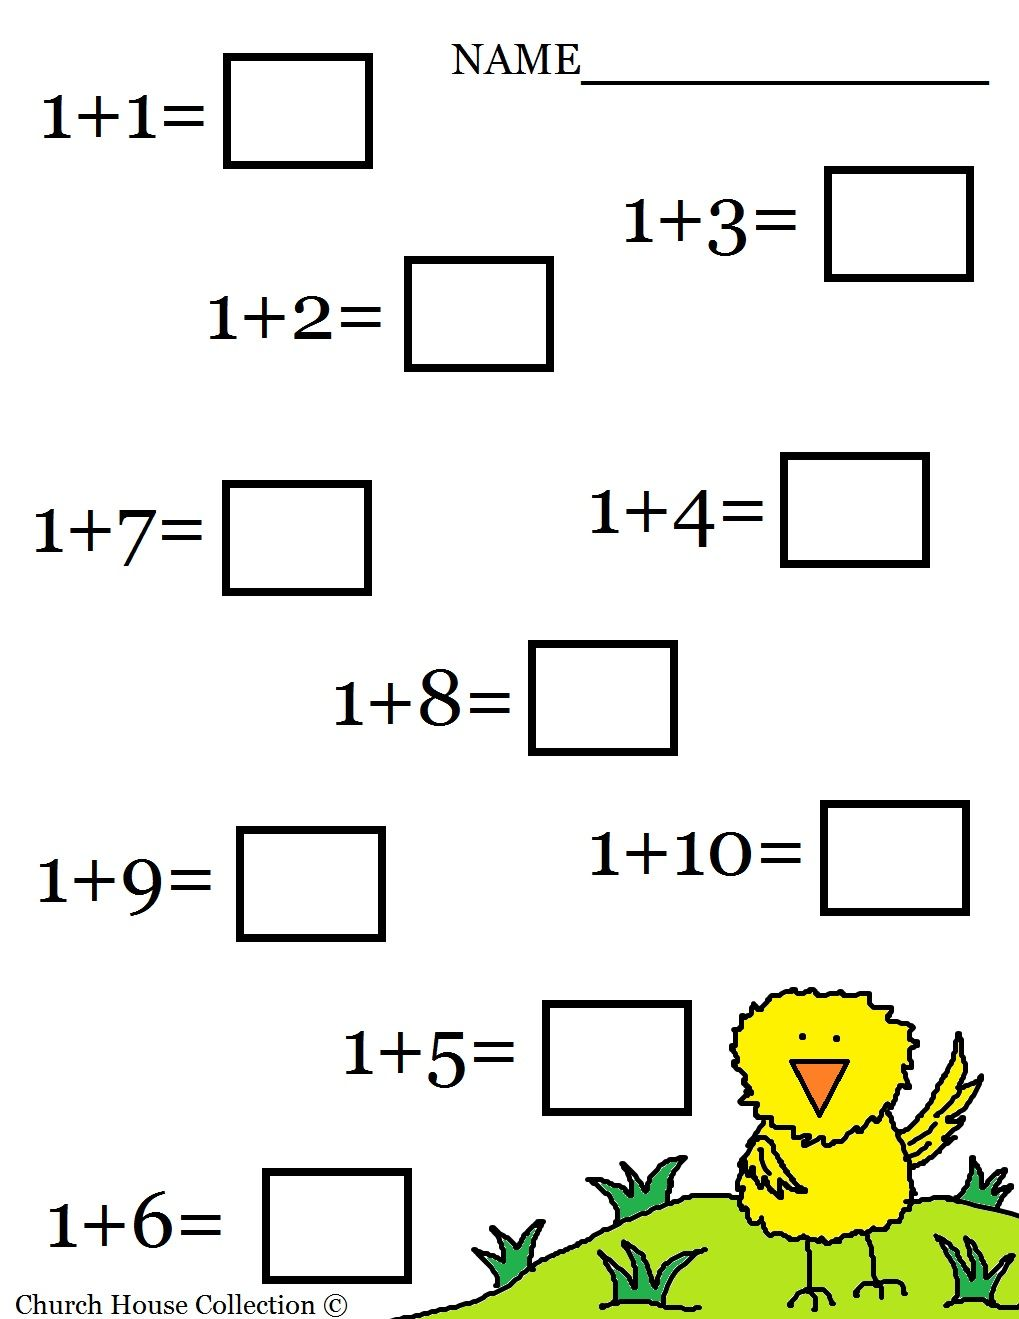 Aldiablosus  Sweet  Images About Worksheets  Math On Pinterest  Math Sheets  With Marvelous  Images About Worksheets  Math On Pinterest  Math Sheets Math Worksheets For Kindergarten And Simple Addition With Cute Merit Badge Worksheets Also Reading Comprehension Worksheets In Addition St Grade Math Worksheets And Exponents Worksheets As Well As Pre K Worksheets Additionally Two Step Equations Worksheet From Pinterestcom With Aldiablosus  Marvelous  Images About Worksheets  Math On Pinterest  Math Sheets  With Cute  Images About Worksheets  Math On Pinterest  Math Sheets Math Worksheets For Kindergarten And Simple Addition And Sweet Merit Badge Worksheets Also Reading Comprehension Worksheets In Addition St Grade Math Worksheets From Pinterestcom